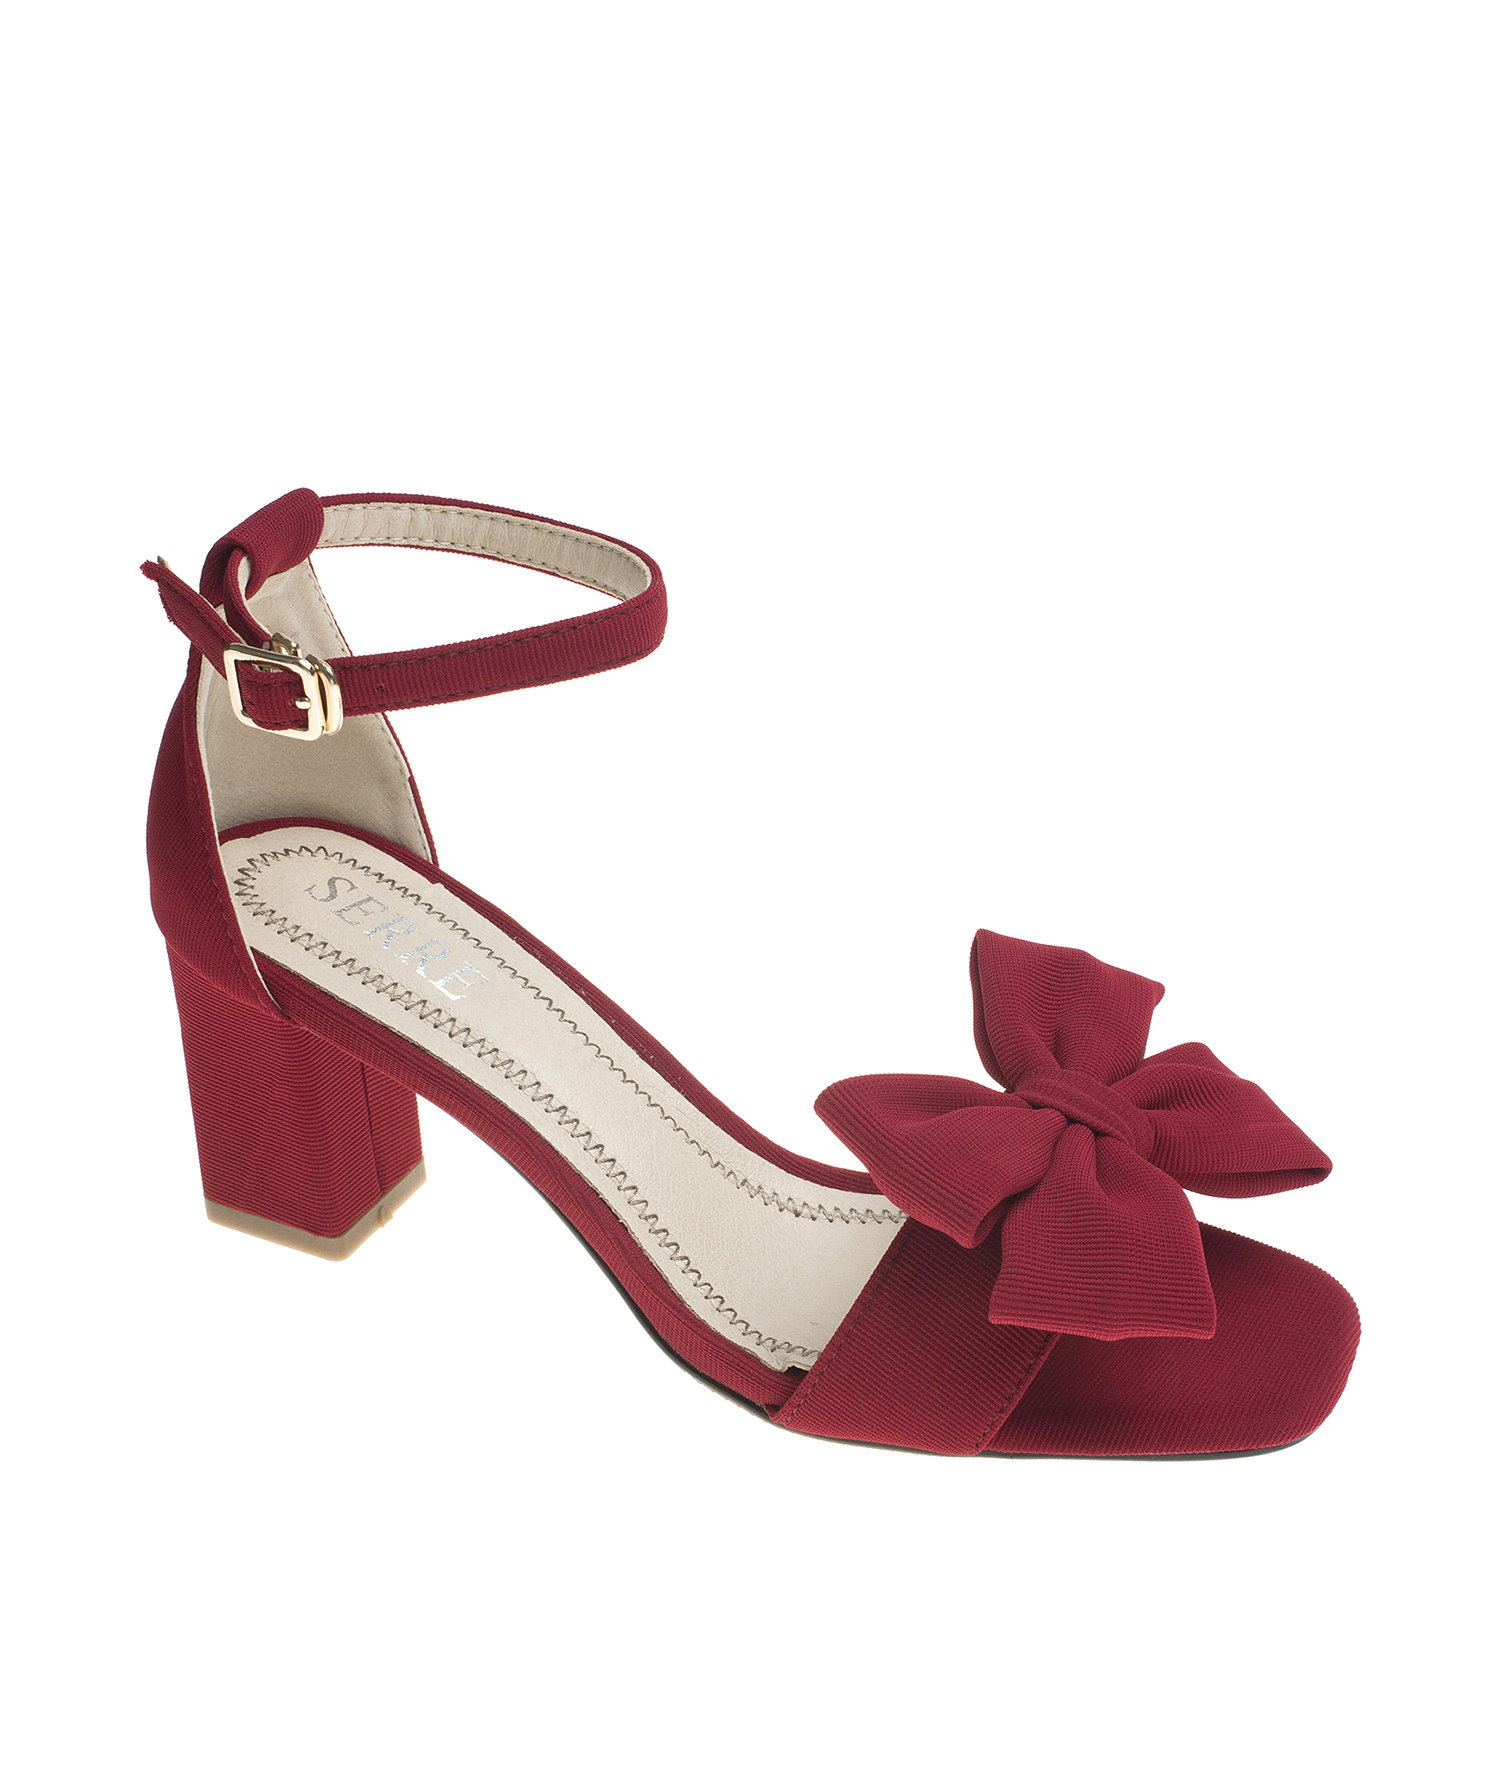 Ankle Strap Heel Sandals Bow Dress Shoes Annakastleshoes Com